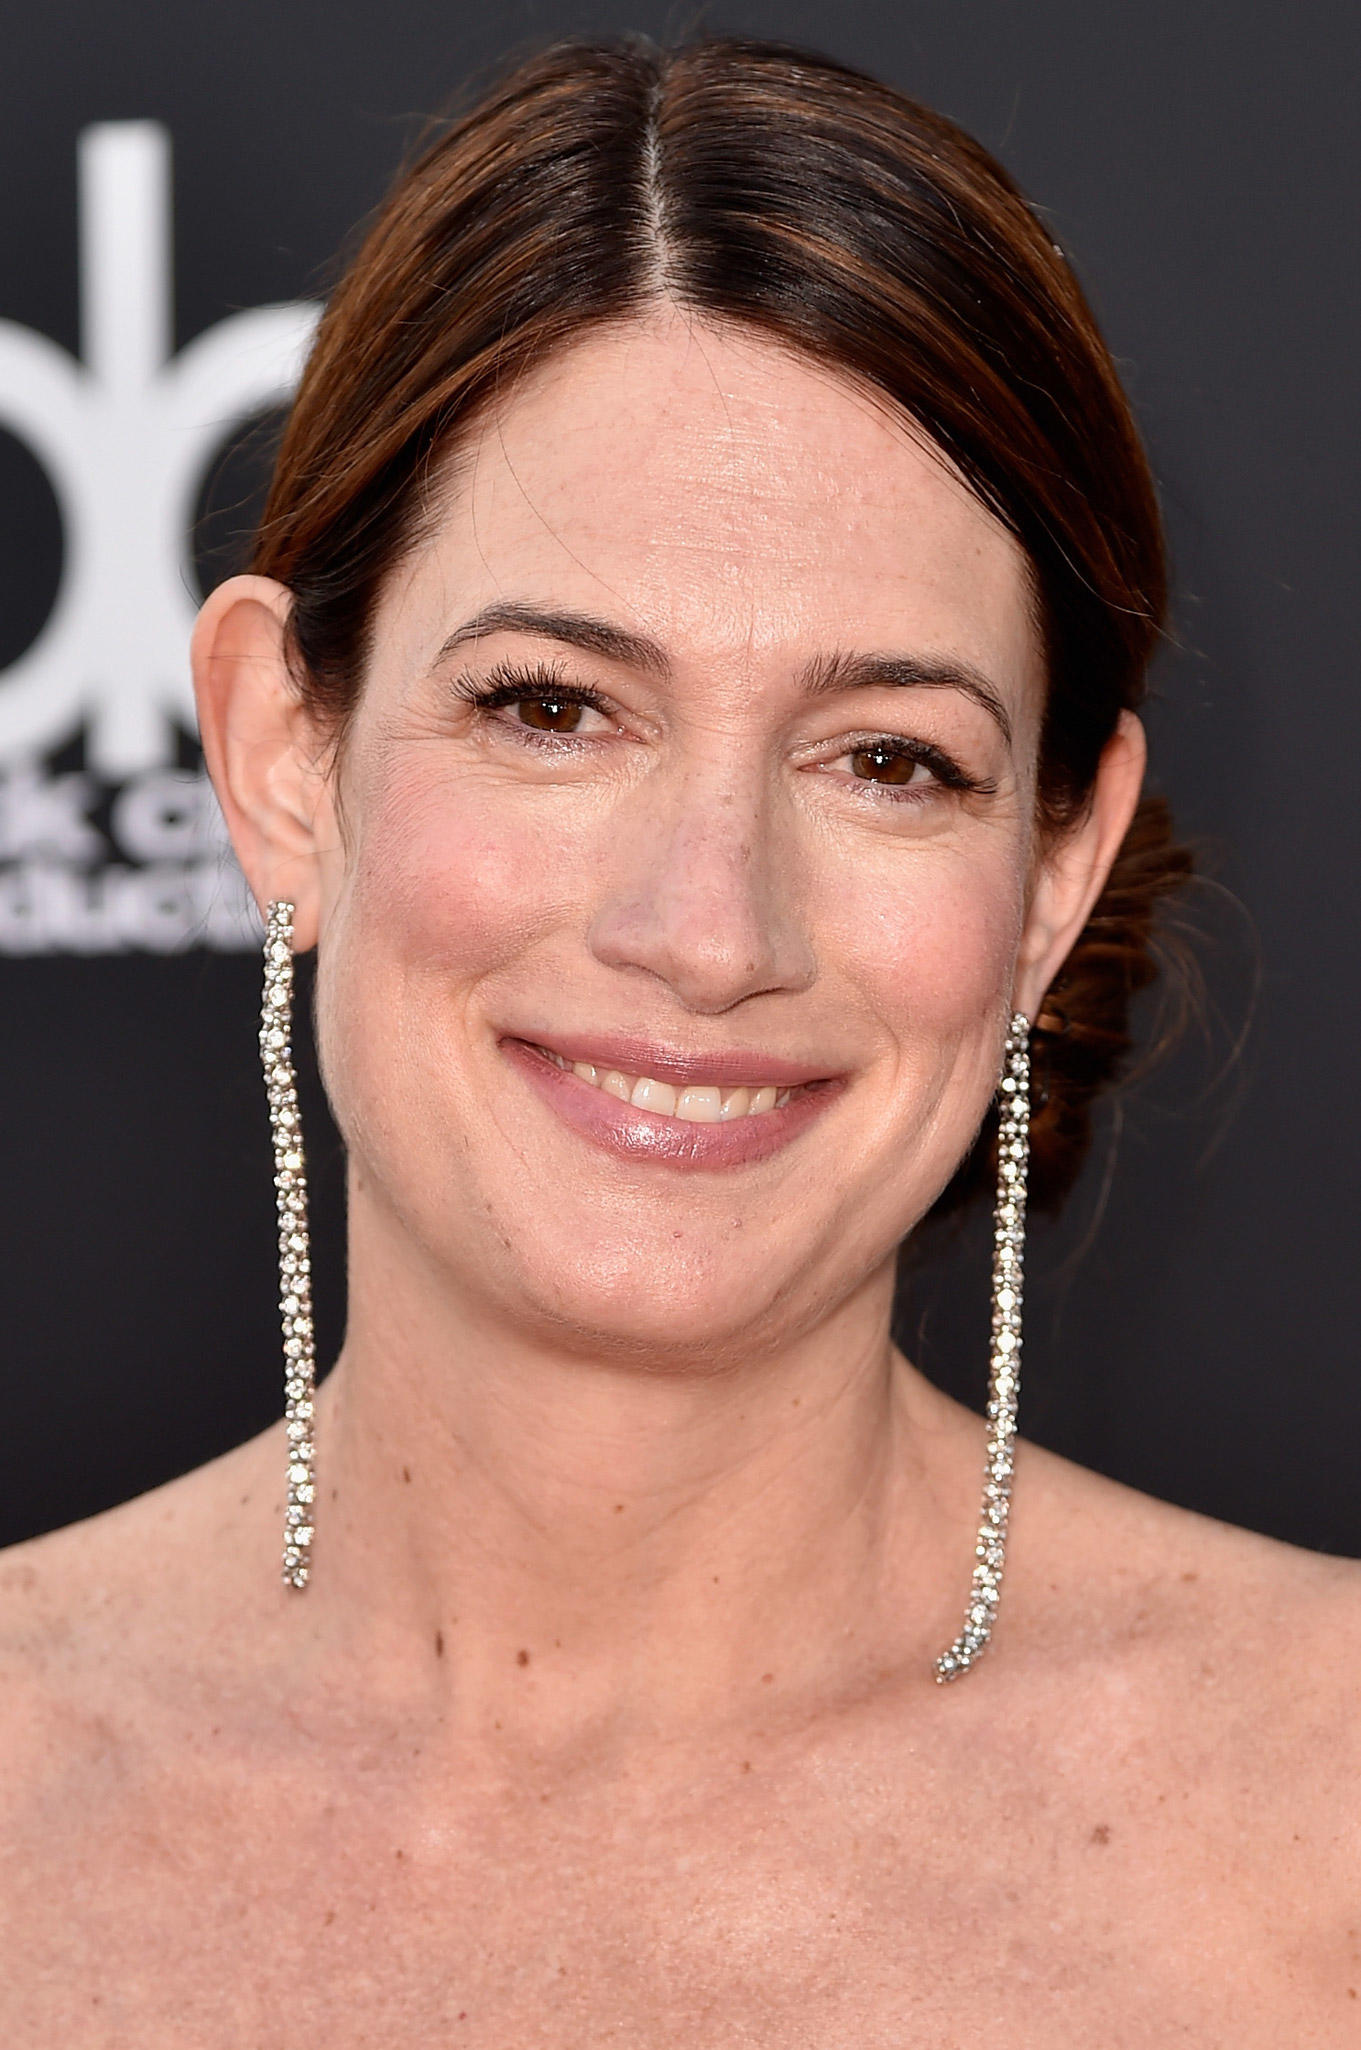 Gillian Flynn attends the 18th Annual Hollywood Film Awards at The Palladium on November 14, 2014 in Hollywood, California.